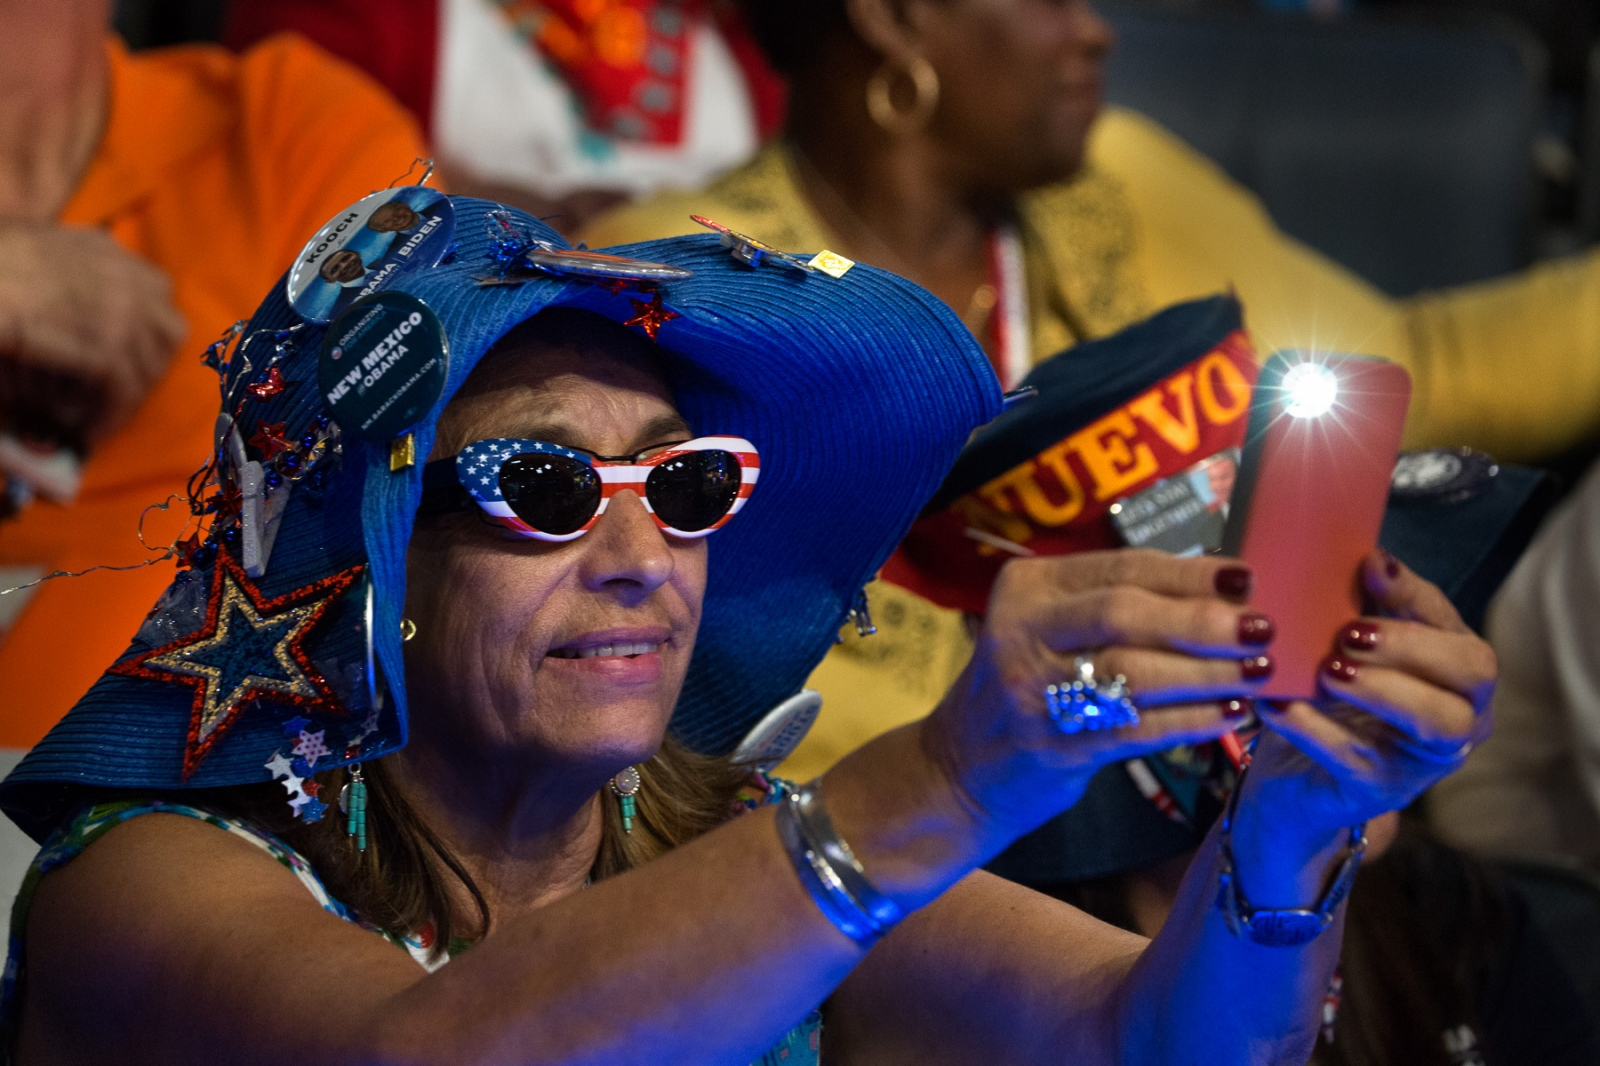 A delegate photographs the activity in front of her at the Democratic National Convention in Charlotte, NC